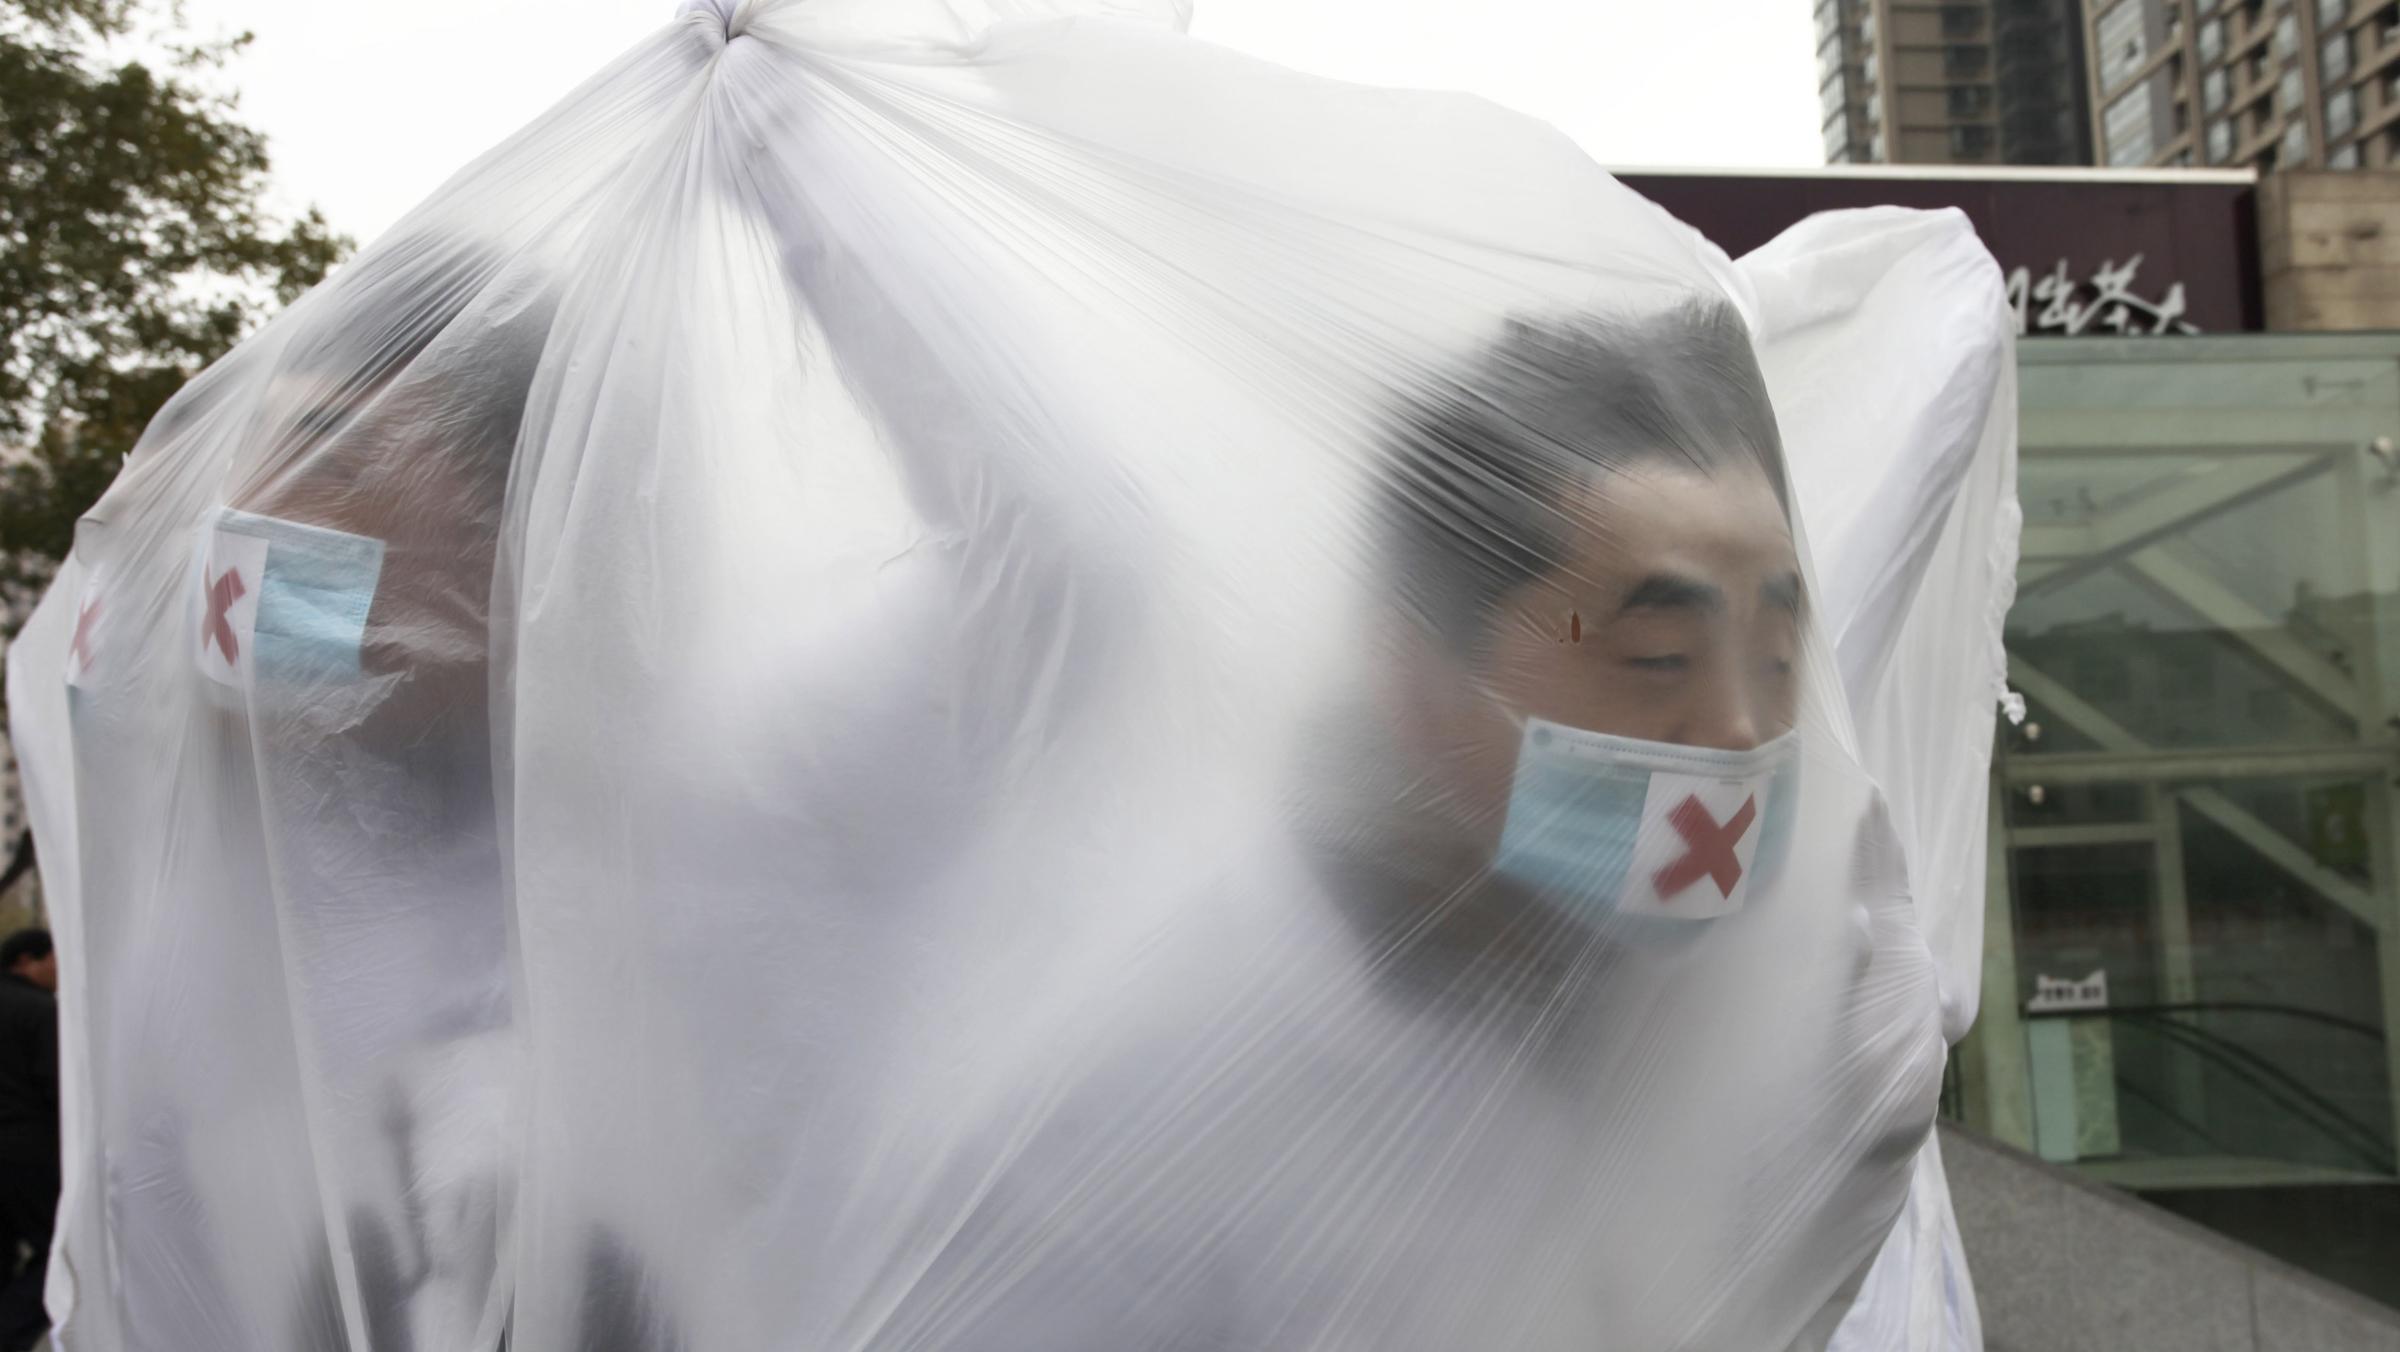 College students wearing masks cover themselves with plastic bags as they participate in a performance art to raise awareness of air pollution, in Xi'an, Shaanxi province December 5, 2013. China's stability-obsessed leadership has become increasingly concerned by the abysmal air quality in cities, as it plays into popular resentment over political privilege and rising inequality in the world's second-largest economy. REUTERS/Stringer